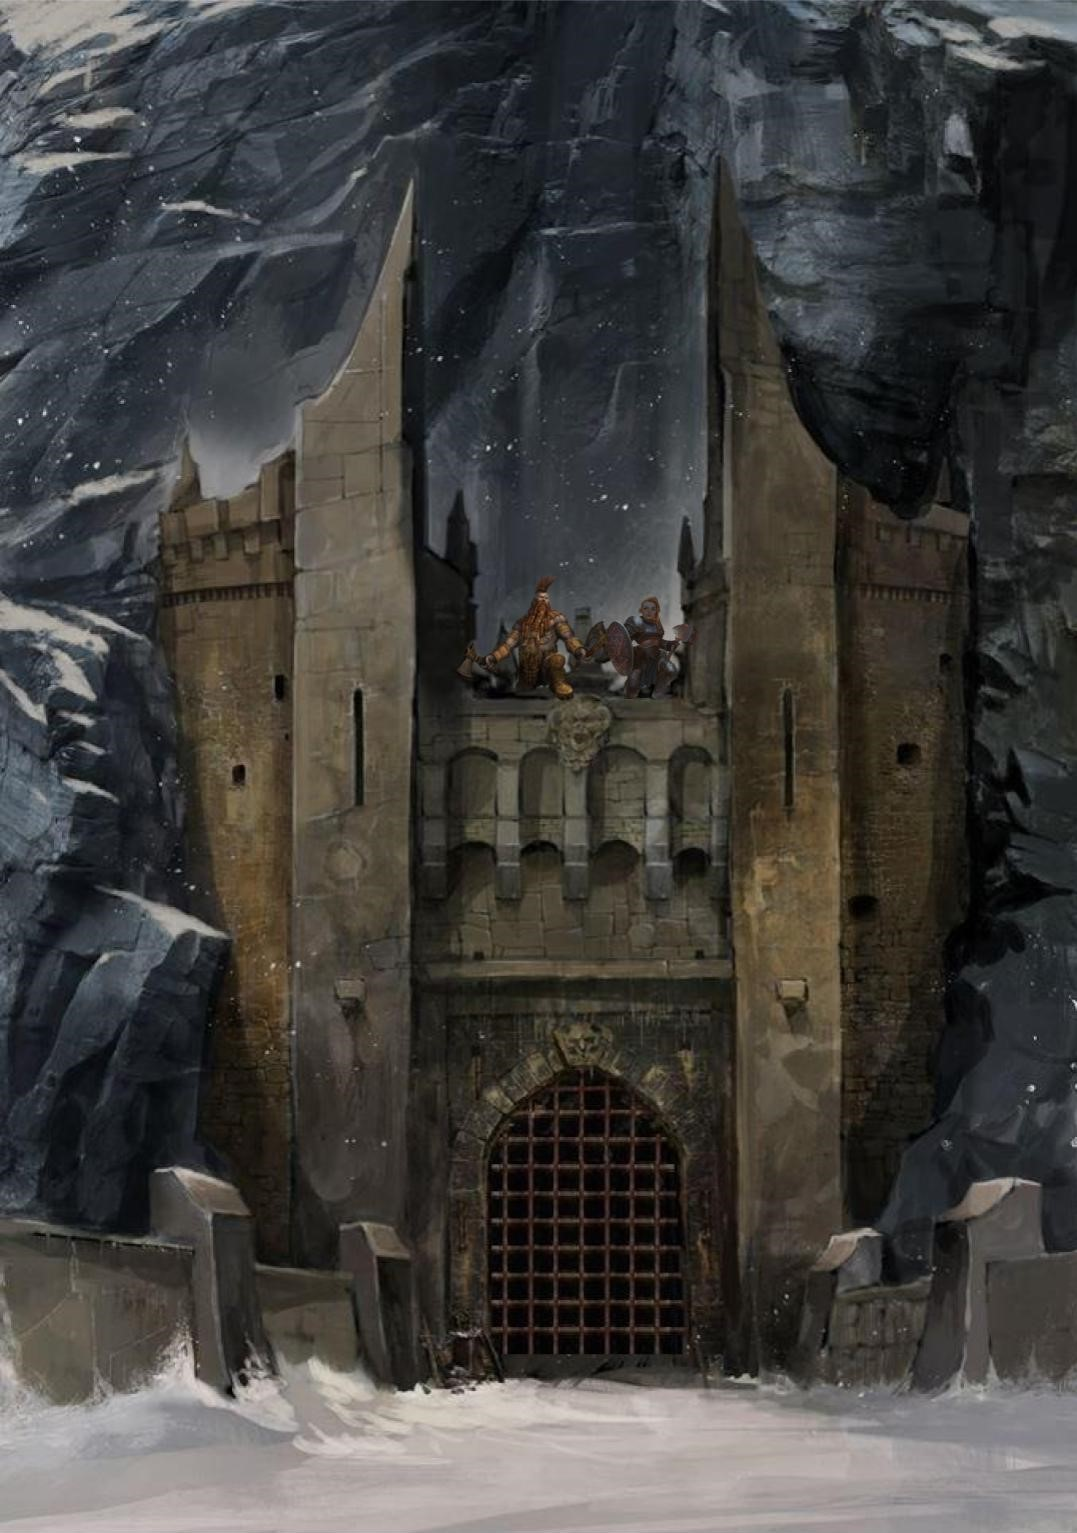 Axeholm fortress is secured by Icehammer dwarves